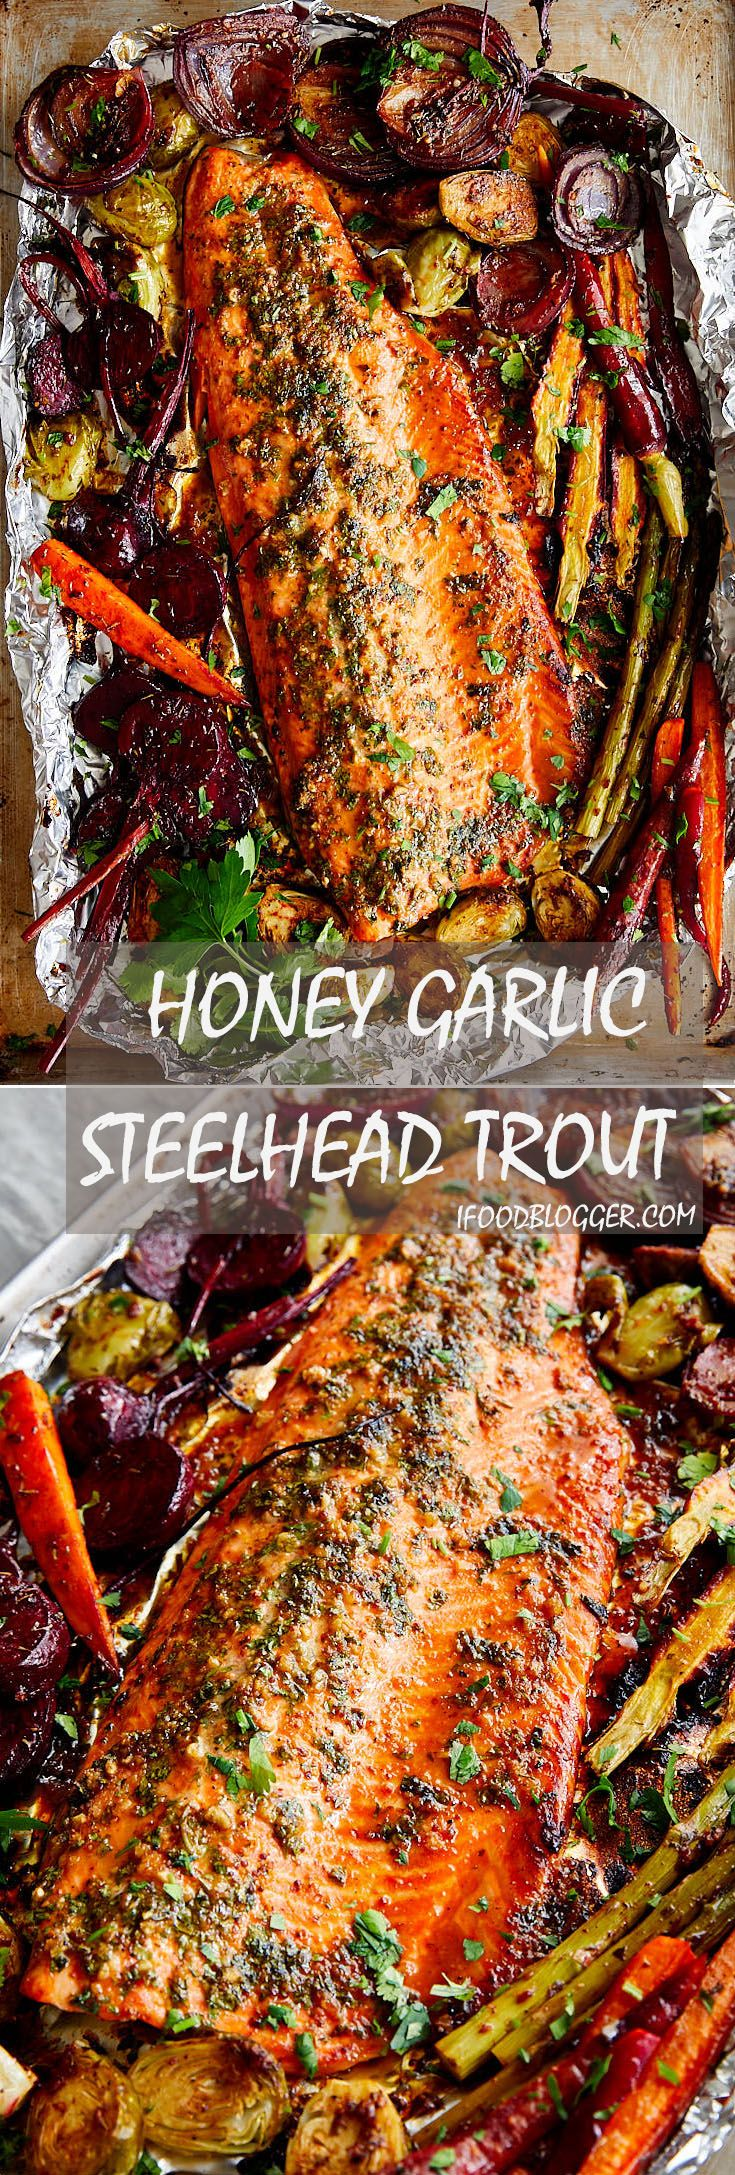 Baked Honey Garlic Steelhead Trout Recipe. The recipe is very simple and the dish is very flavorful. For best results, marinate the fish for at least two hours.| ifoodblogger.com -   24 fish recipes trout